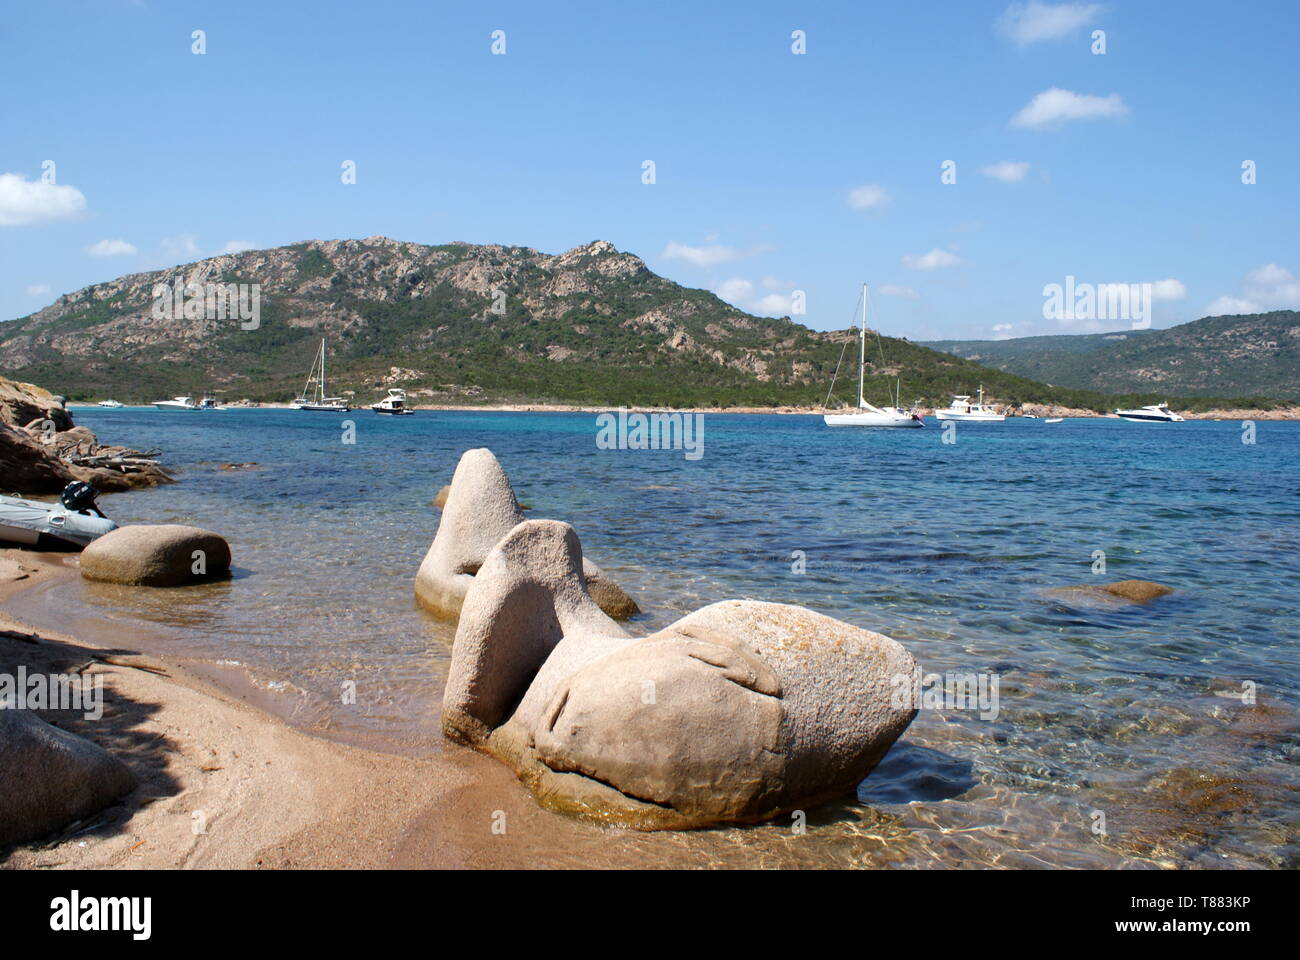 Large rocks on the beach and yachts anchored in the Gulf of Porto Novo, Corsica, France - Stock Image